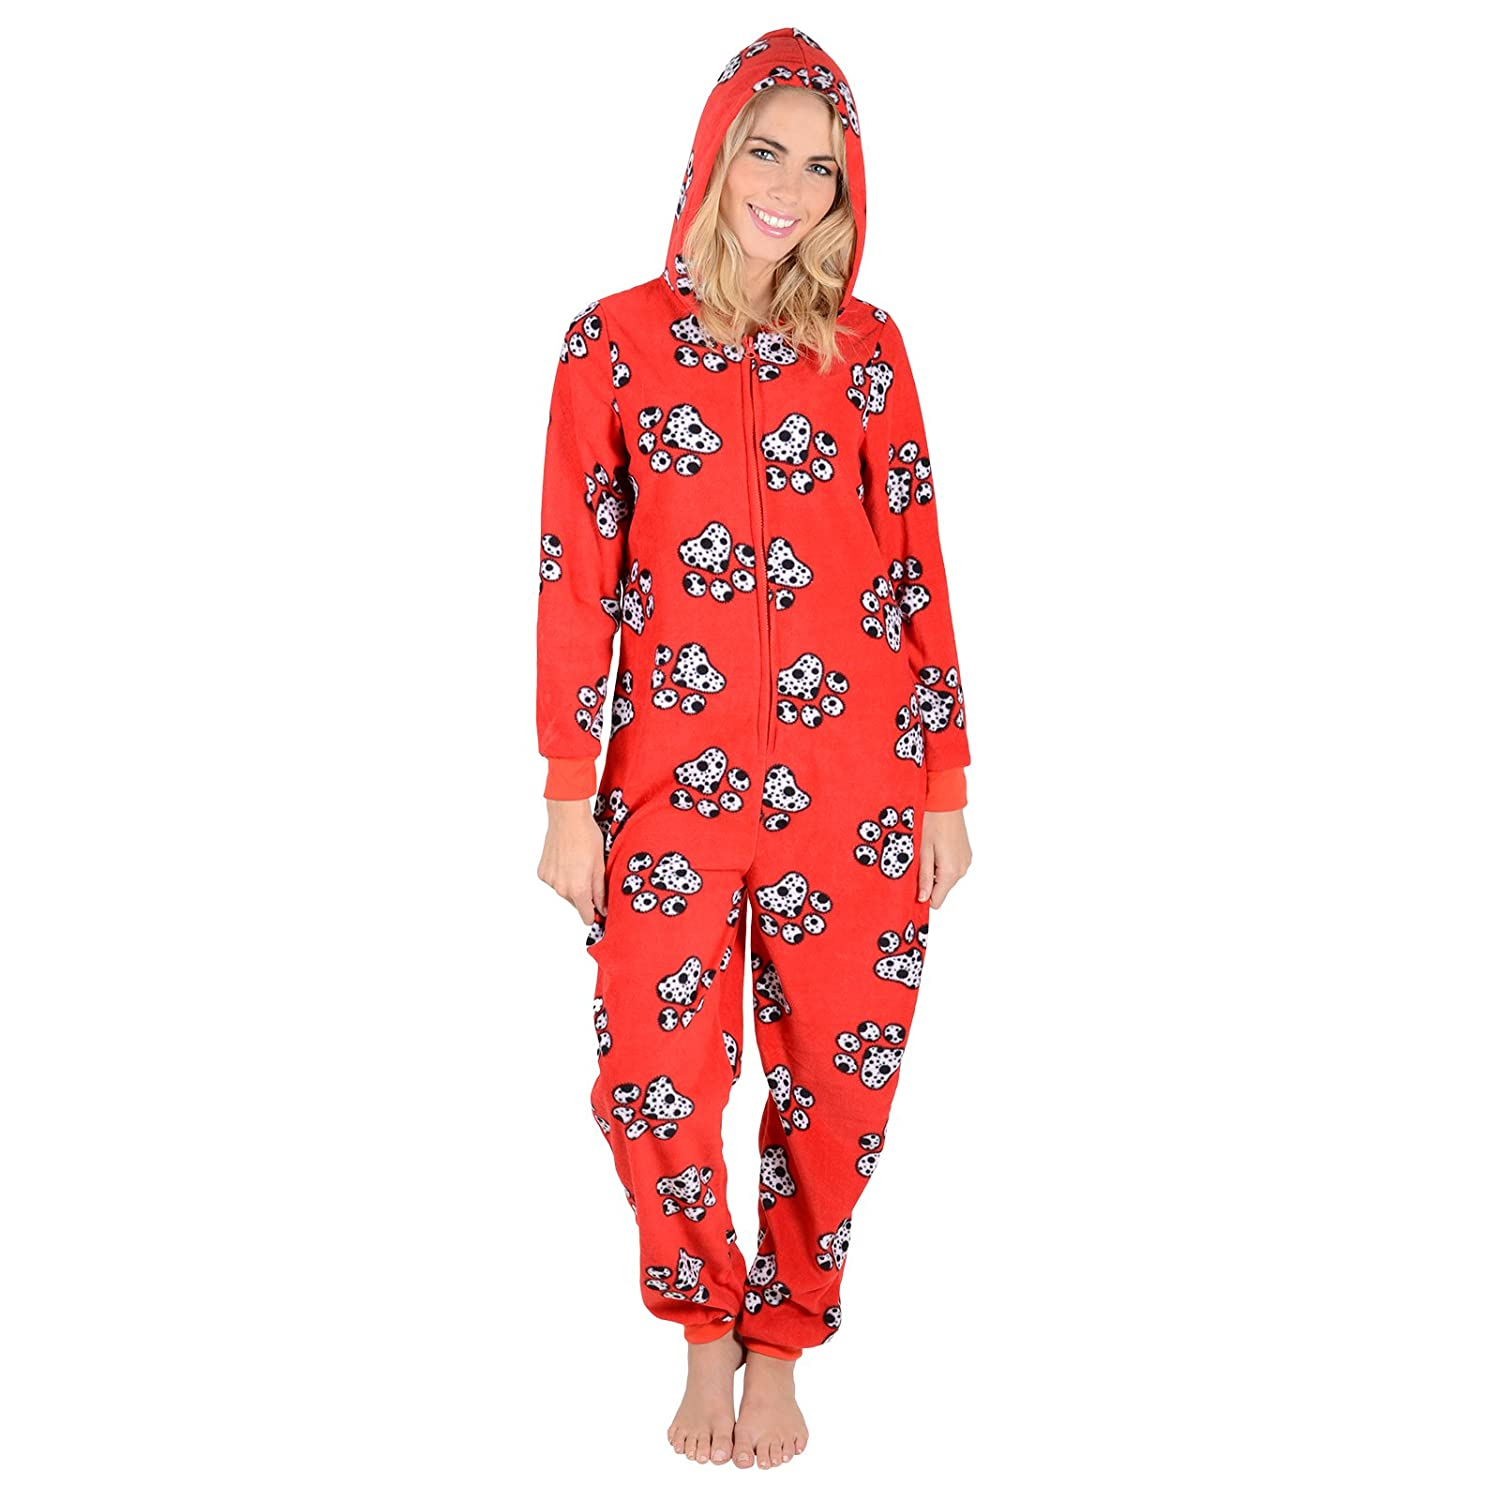 Autumn Faith Ladies Fleece All in One Piece Nightwear